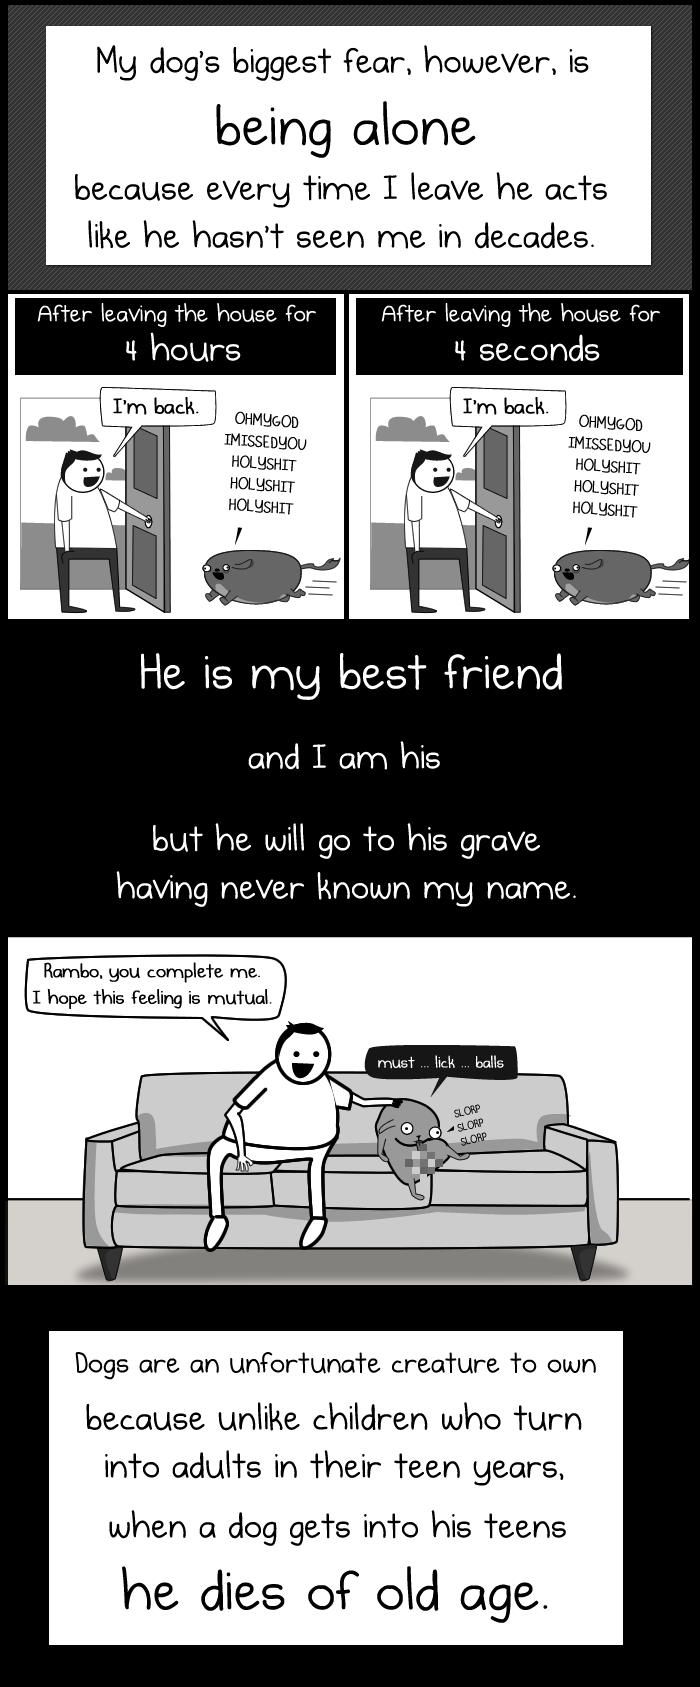 My dog the paradox by the oatmeal 3